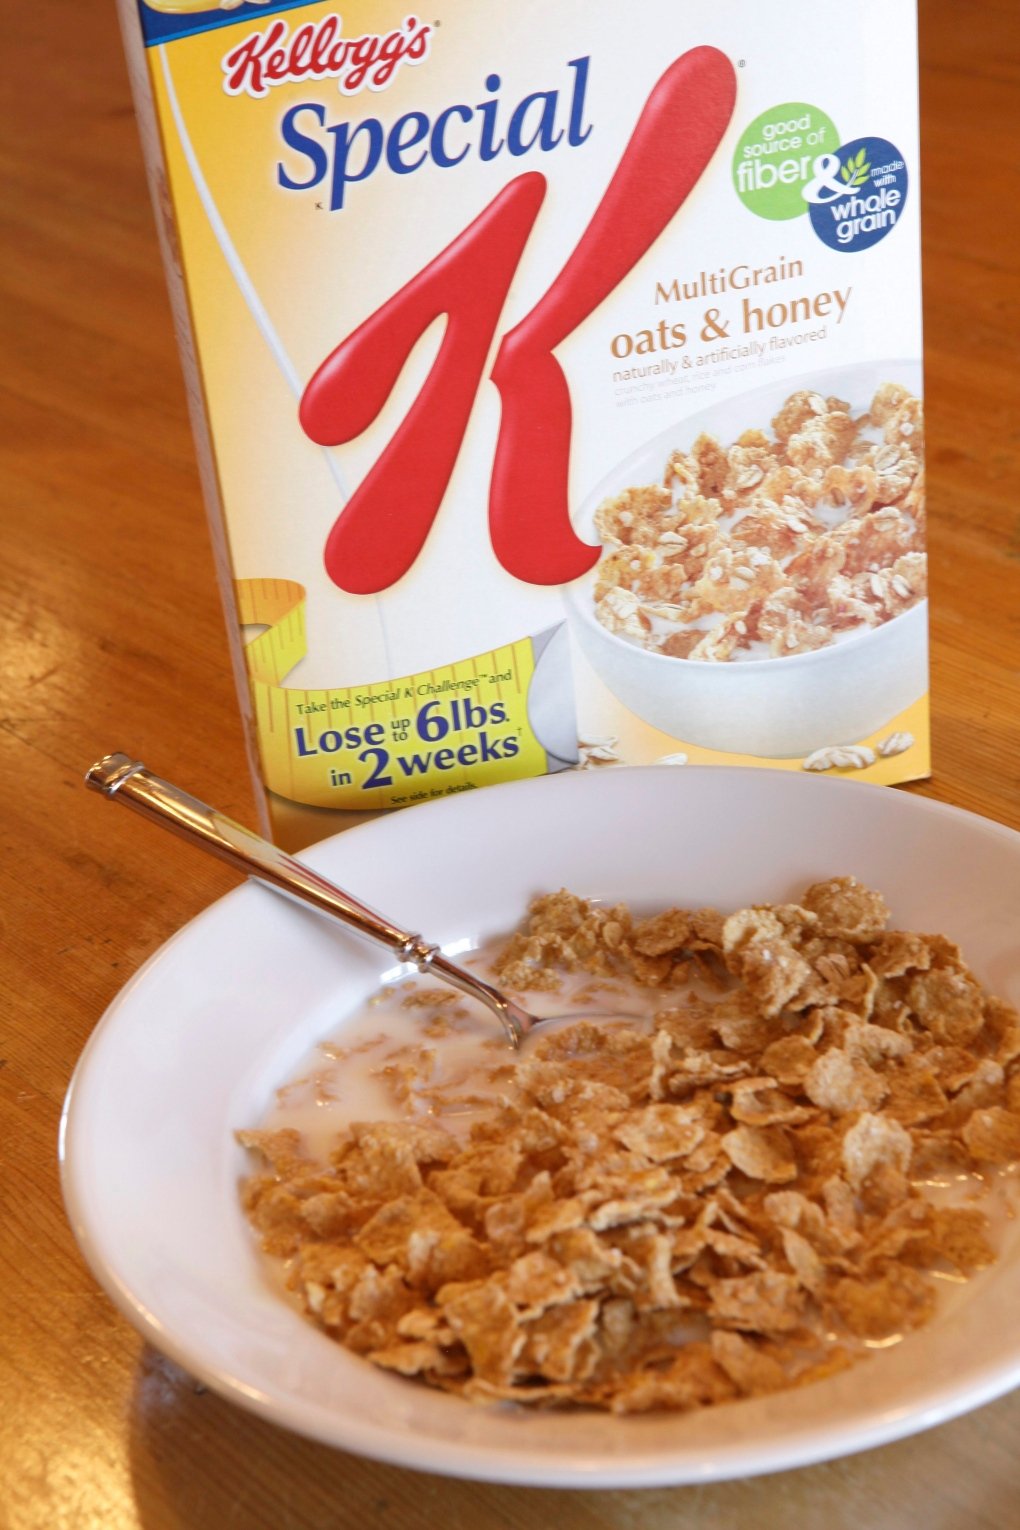 Breakfast cereal bowl